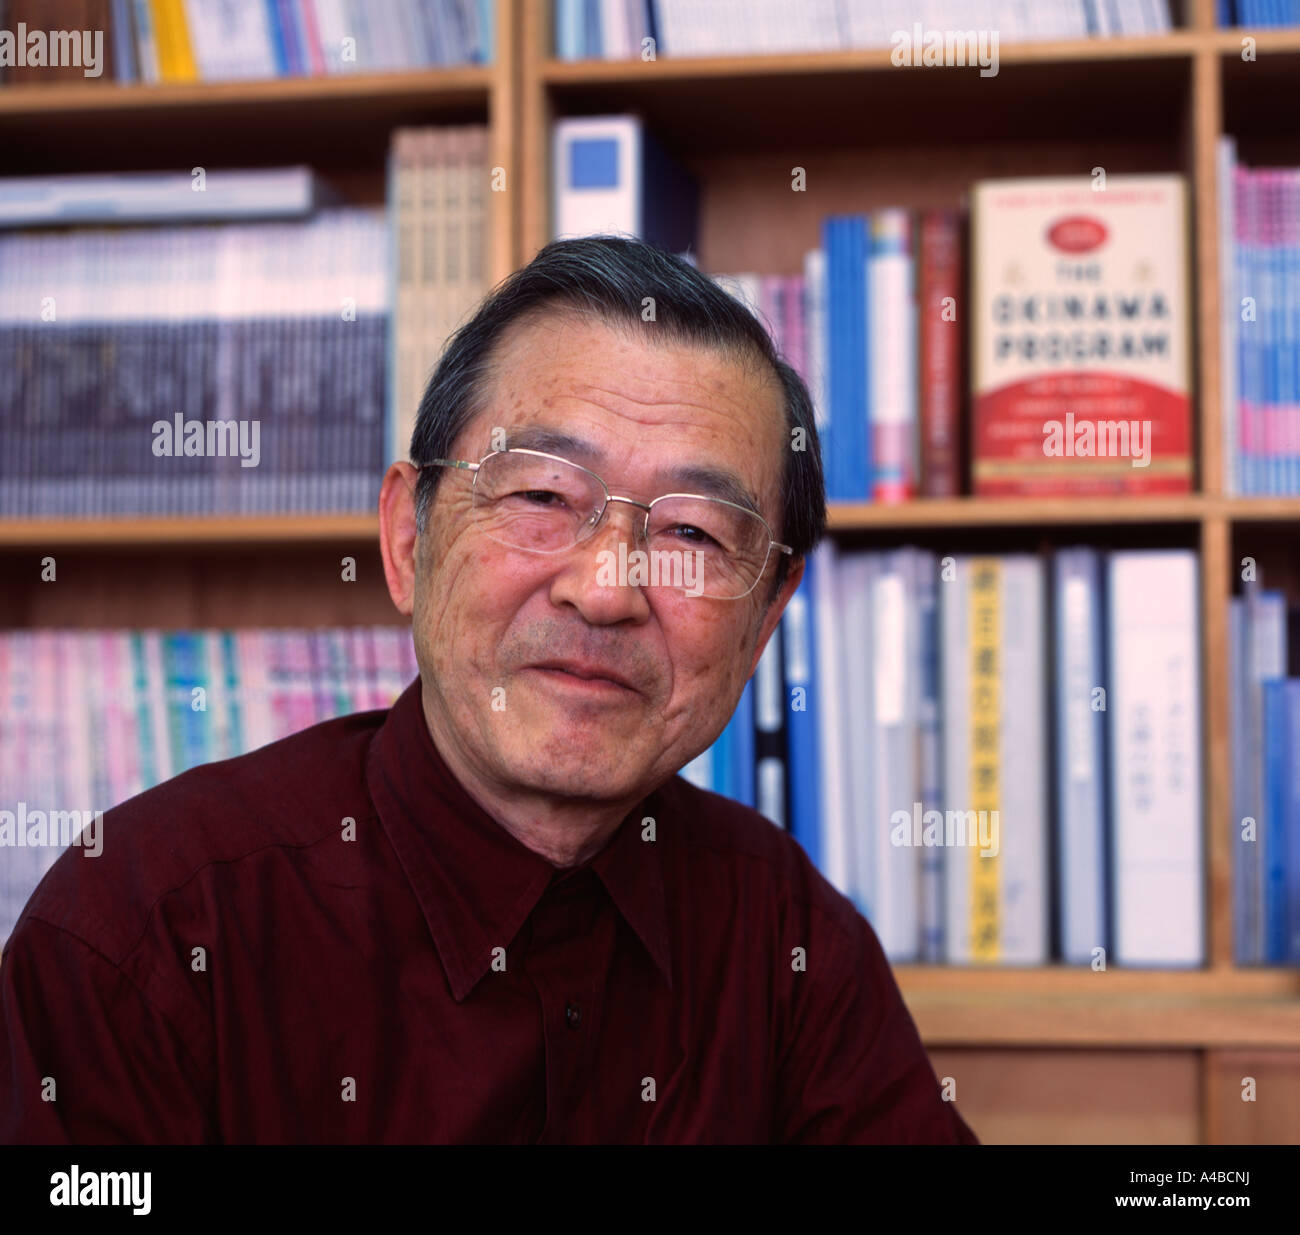 Dr. Makoto Suzuki a cardiologist and geriatrician. He has spent his